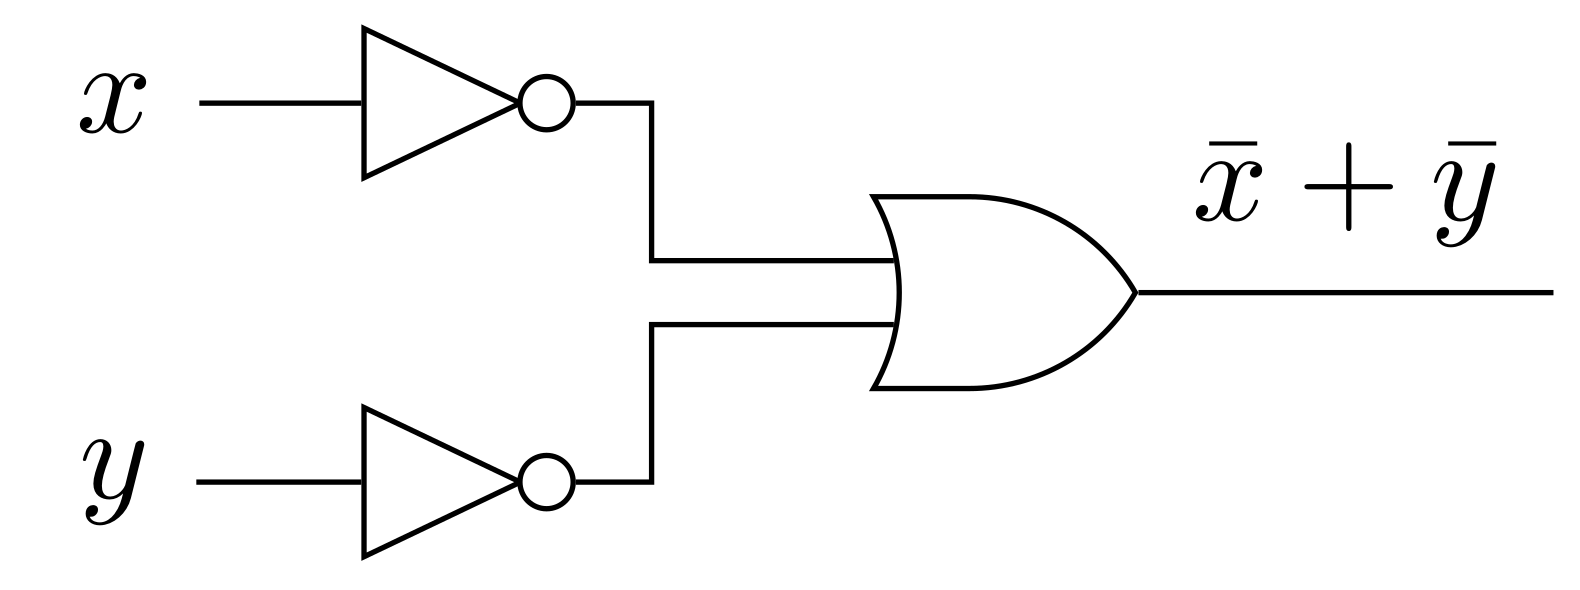 logic gates diagram latex